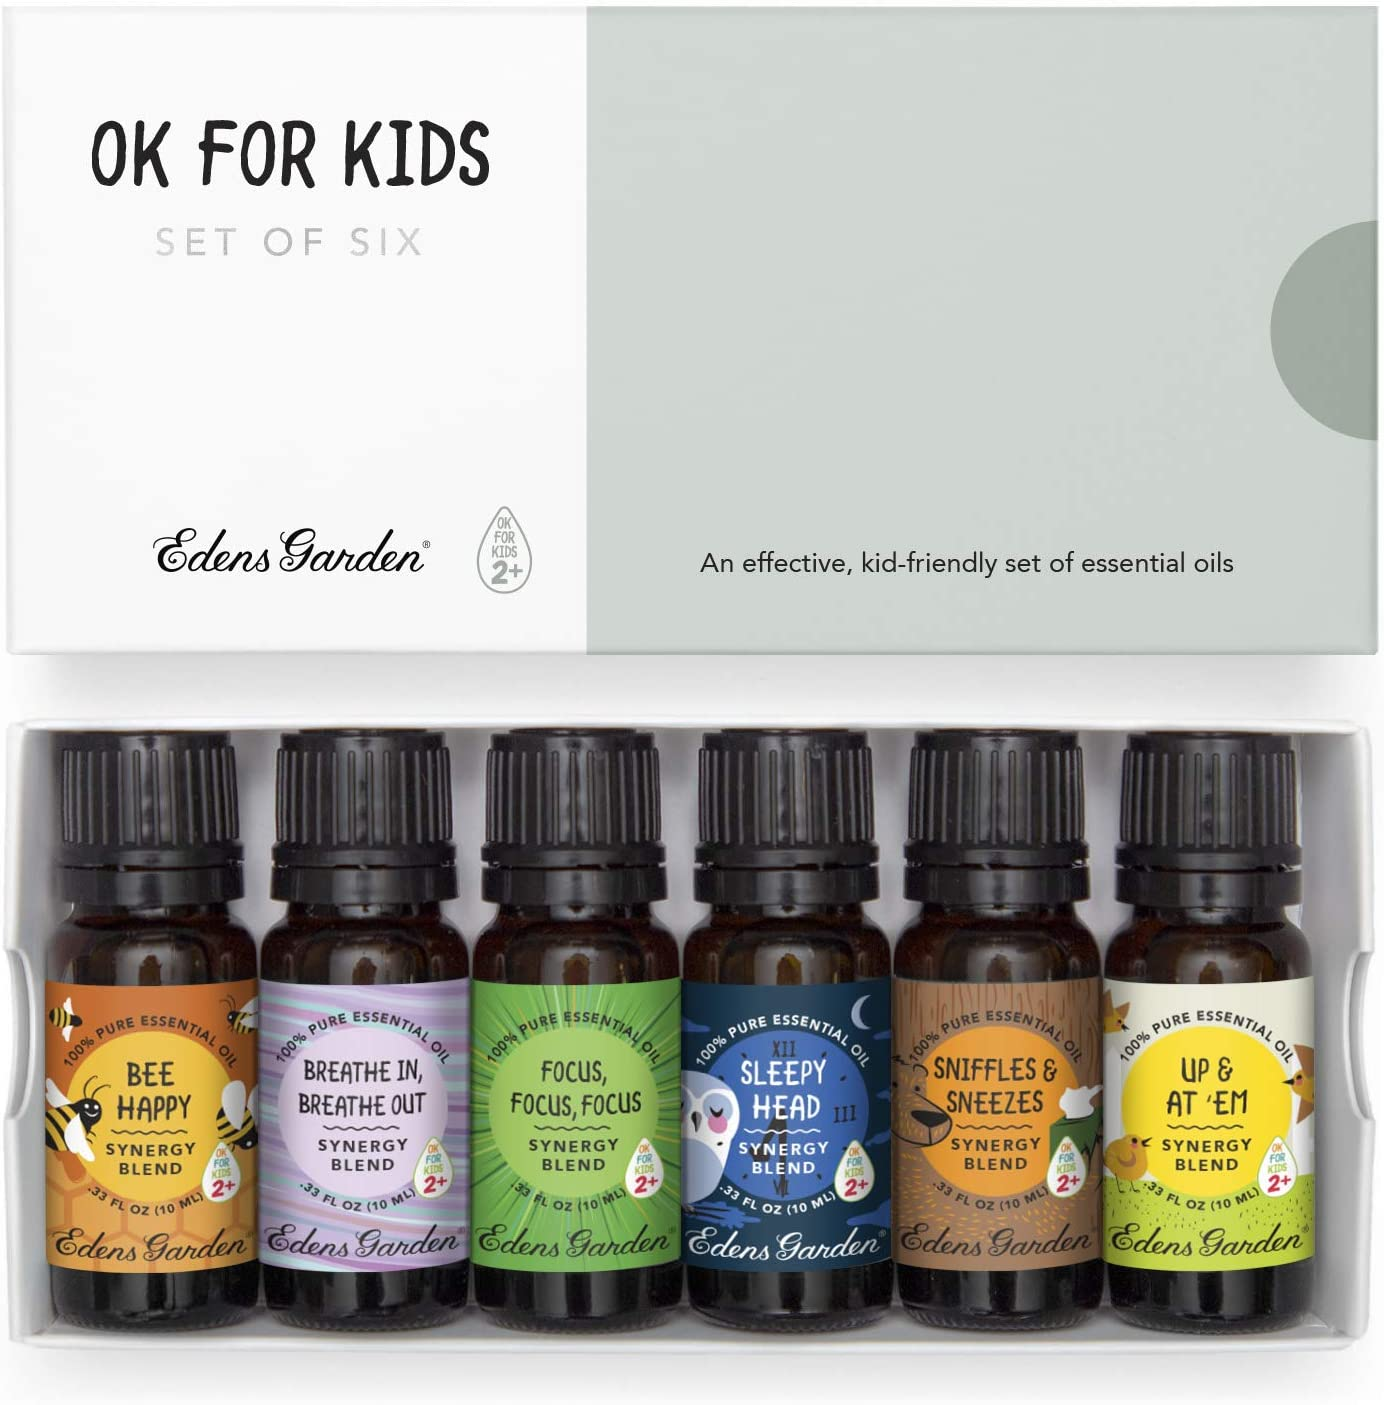 Amazon Com Edens Garden Ok For Kids 6 Set Best 100 Pure Essential Oil Synergy Blend Aromatherapy Starter Kit Child Safe 2 For Diffuser Therapeutic Use 10 Ml Health Personal Care